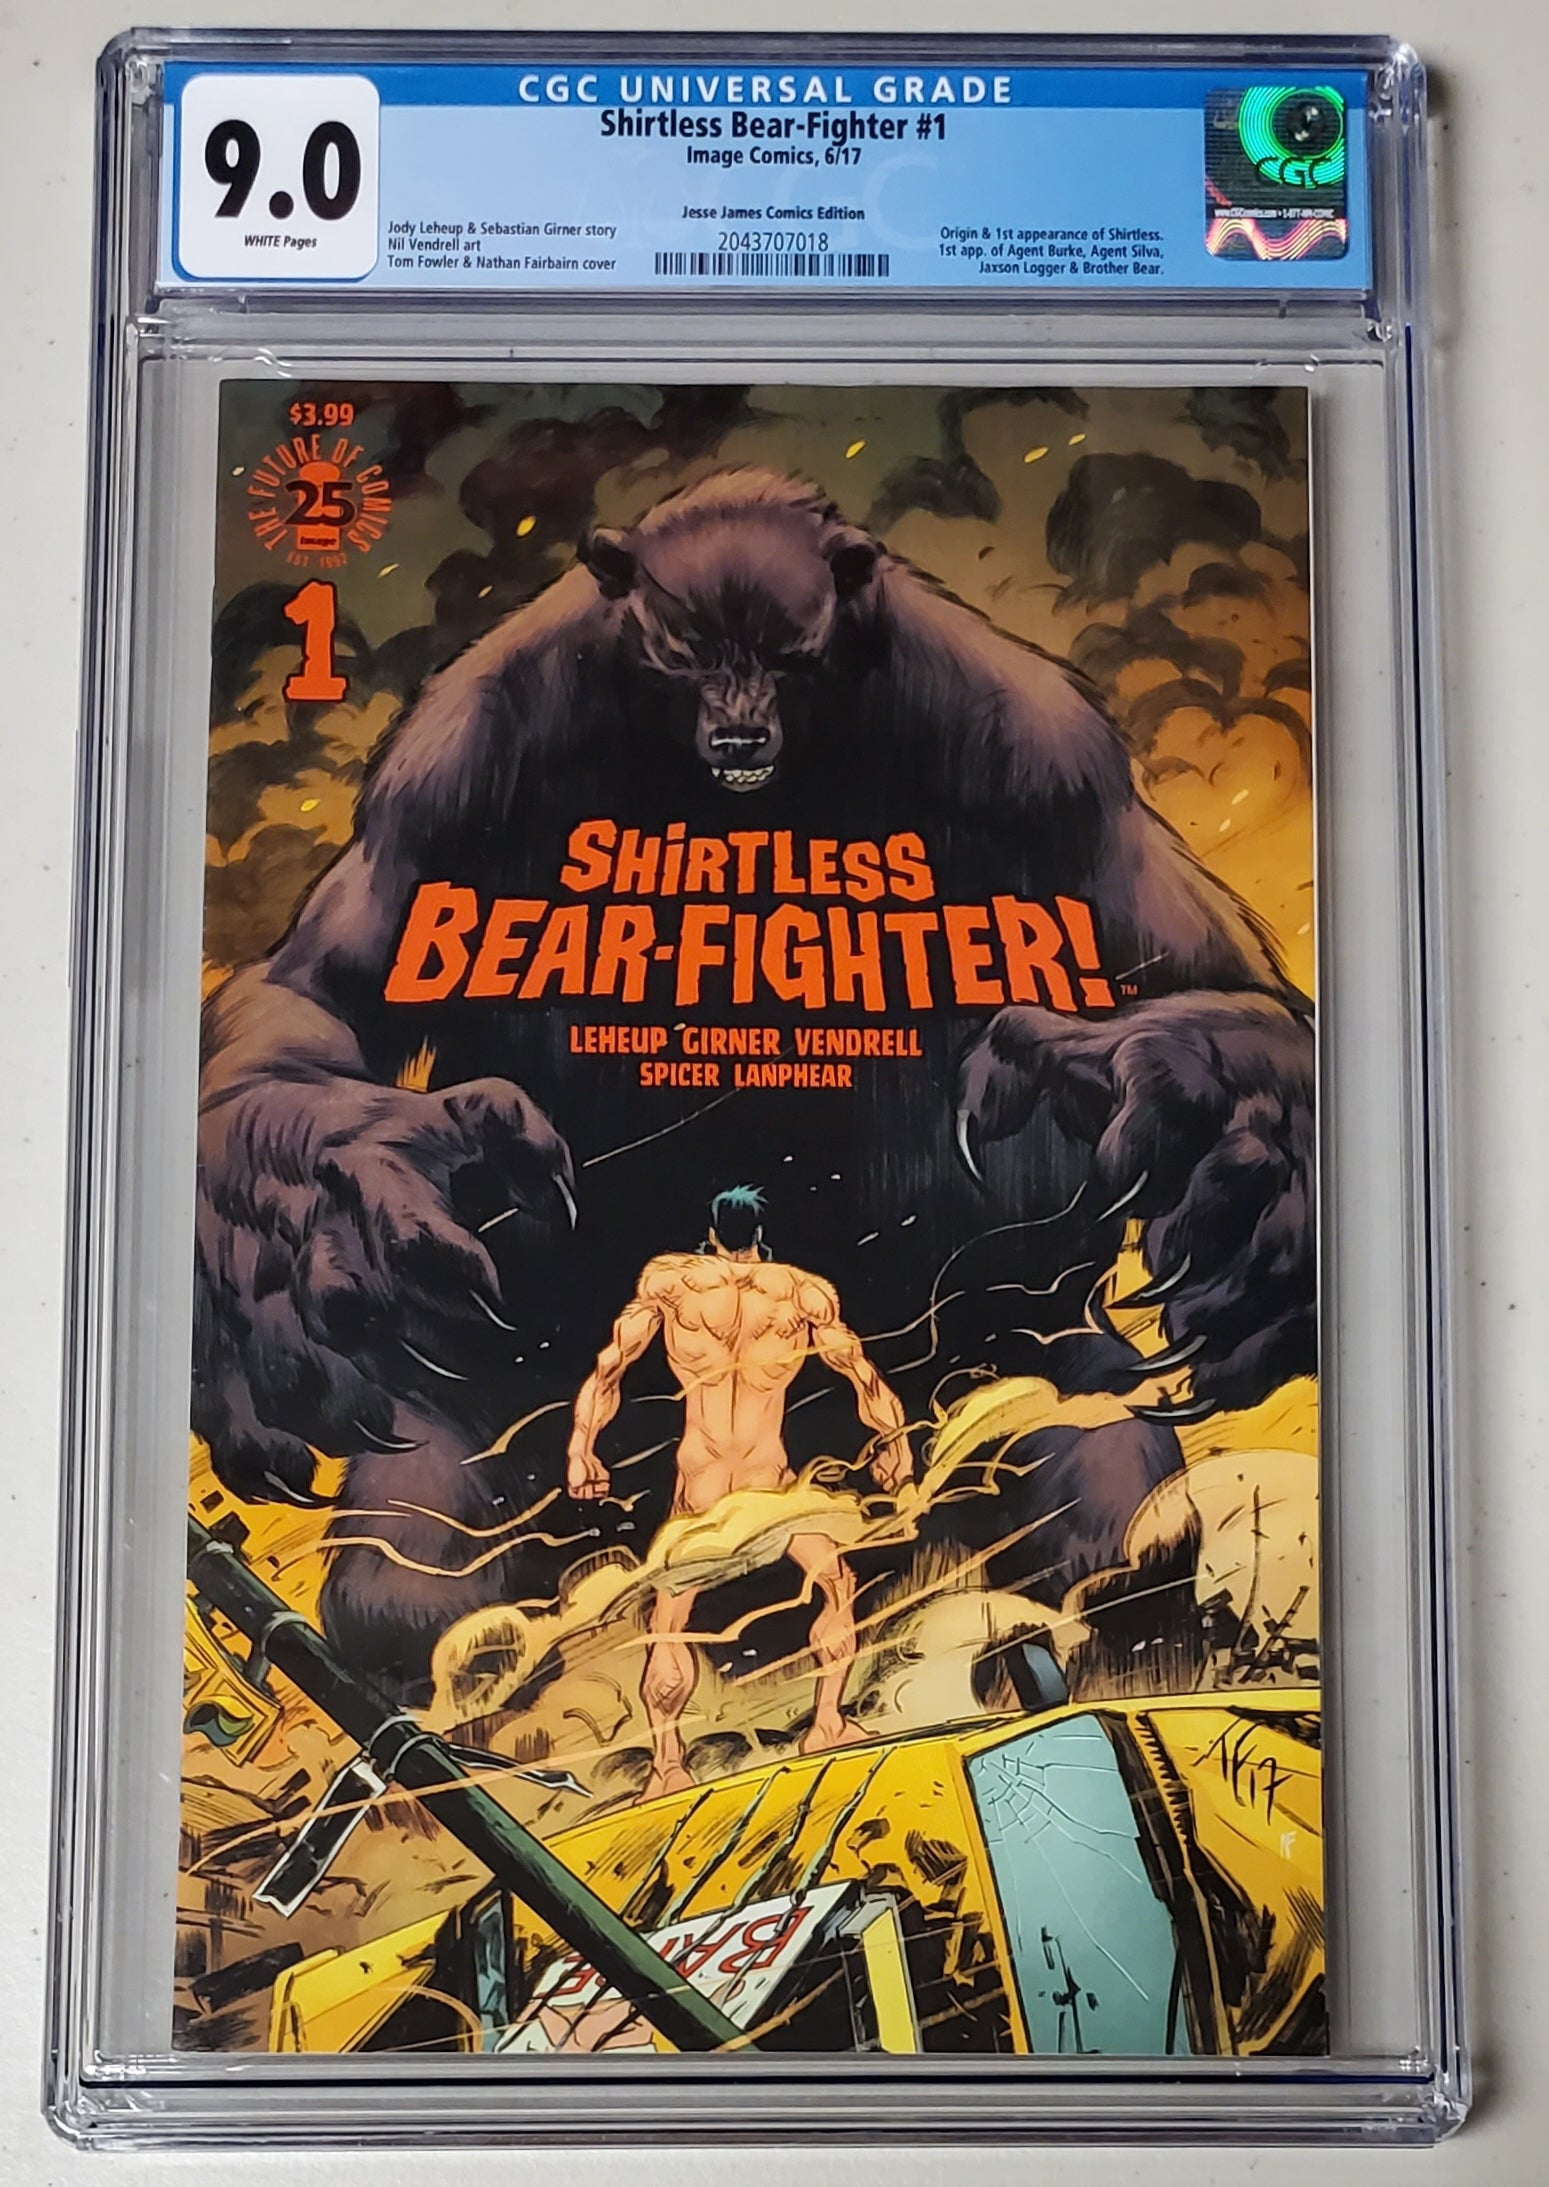 9.0 CGC Shirtless Bear Fighter #1 Variant